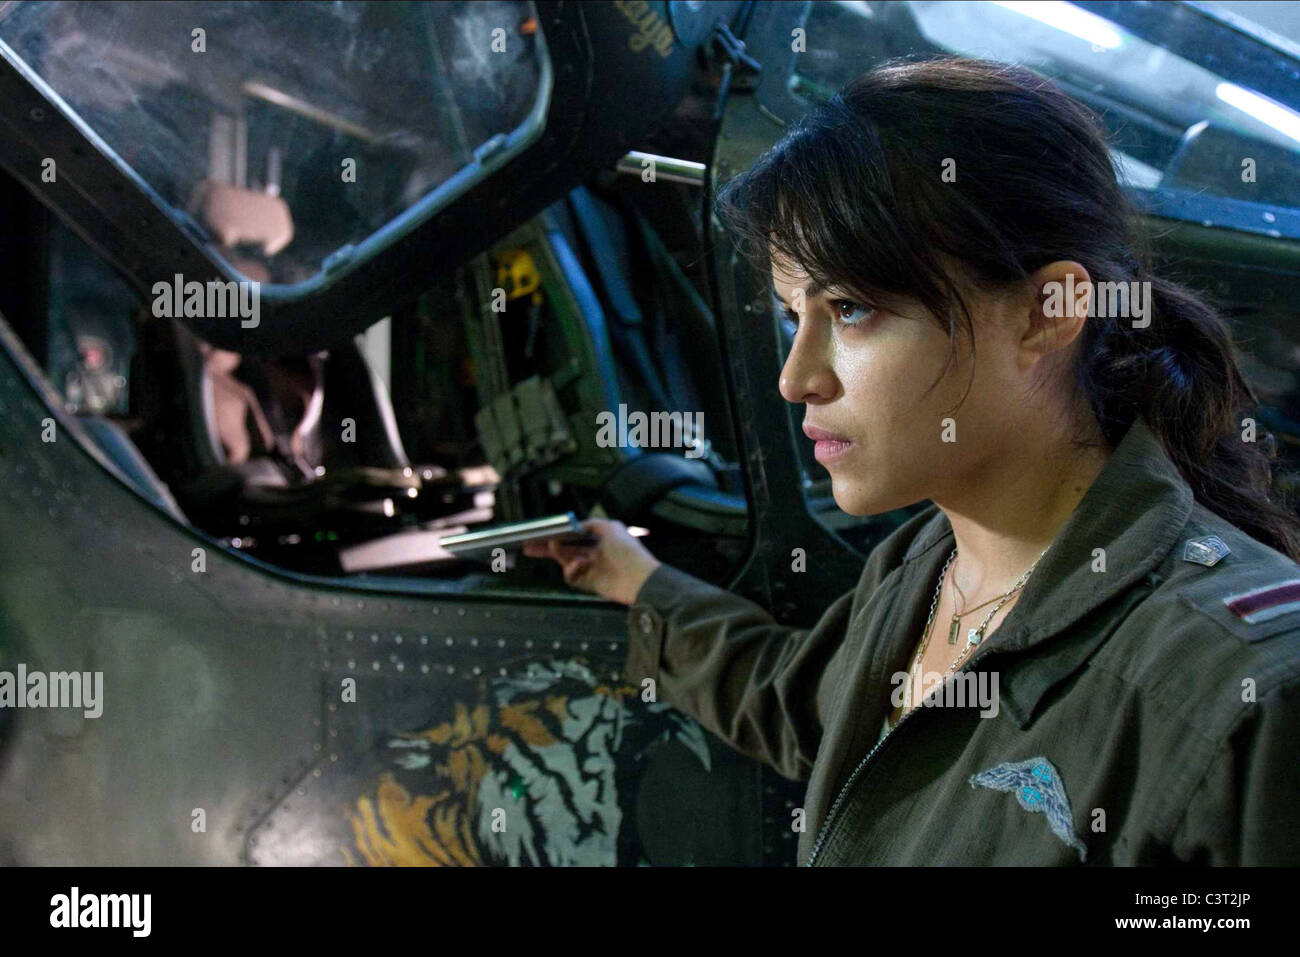 michelle rodriguez avatar (2009 stock photo: 36793646 - alamy